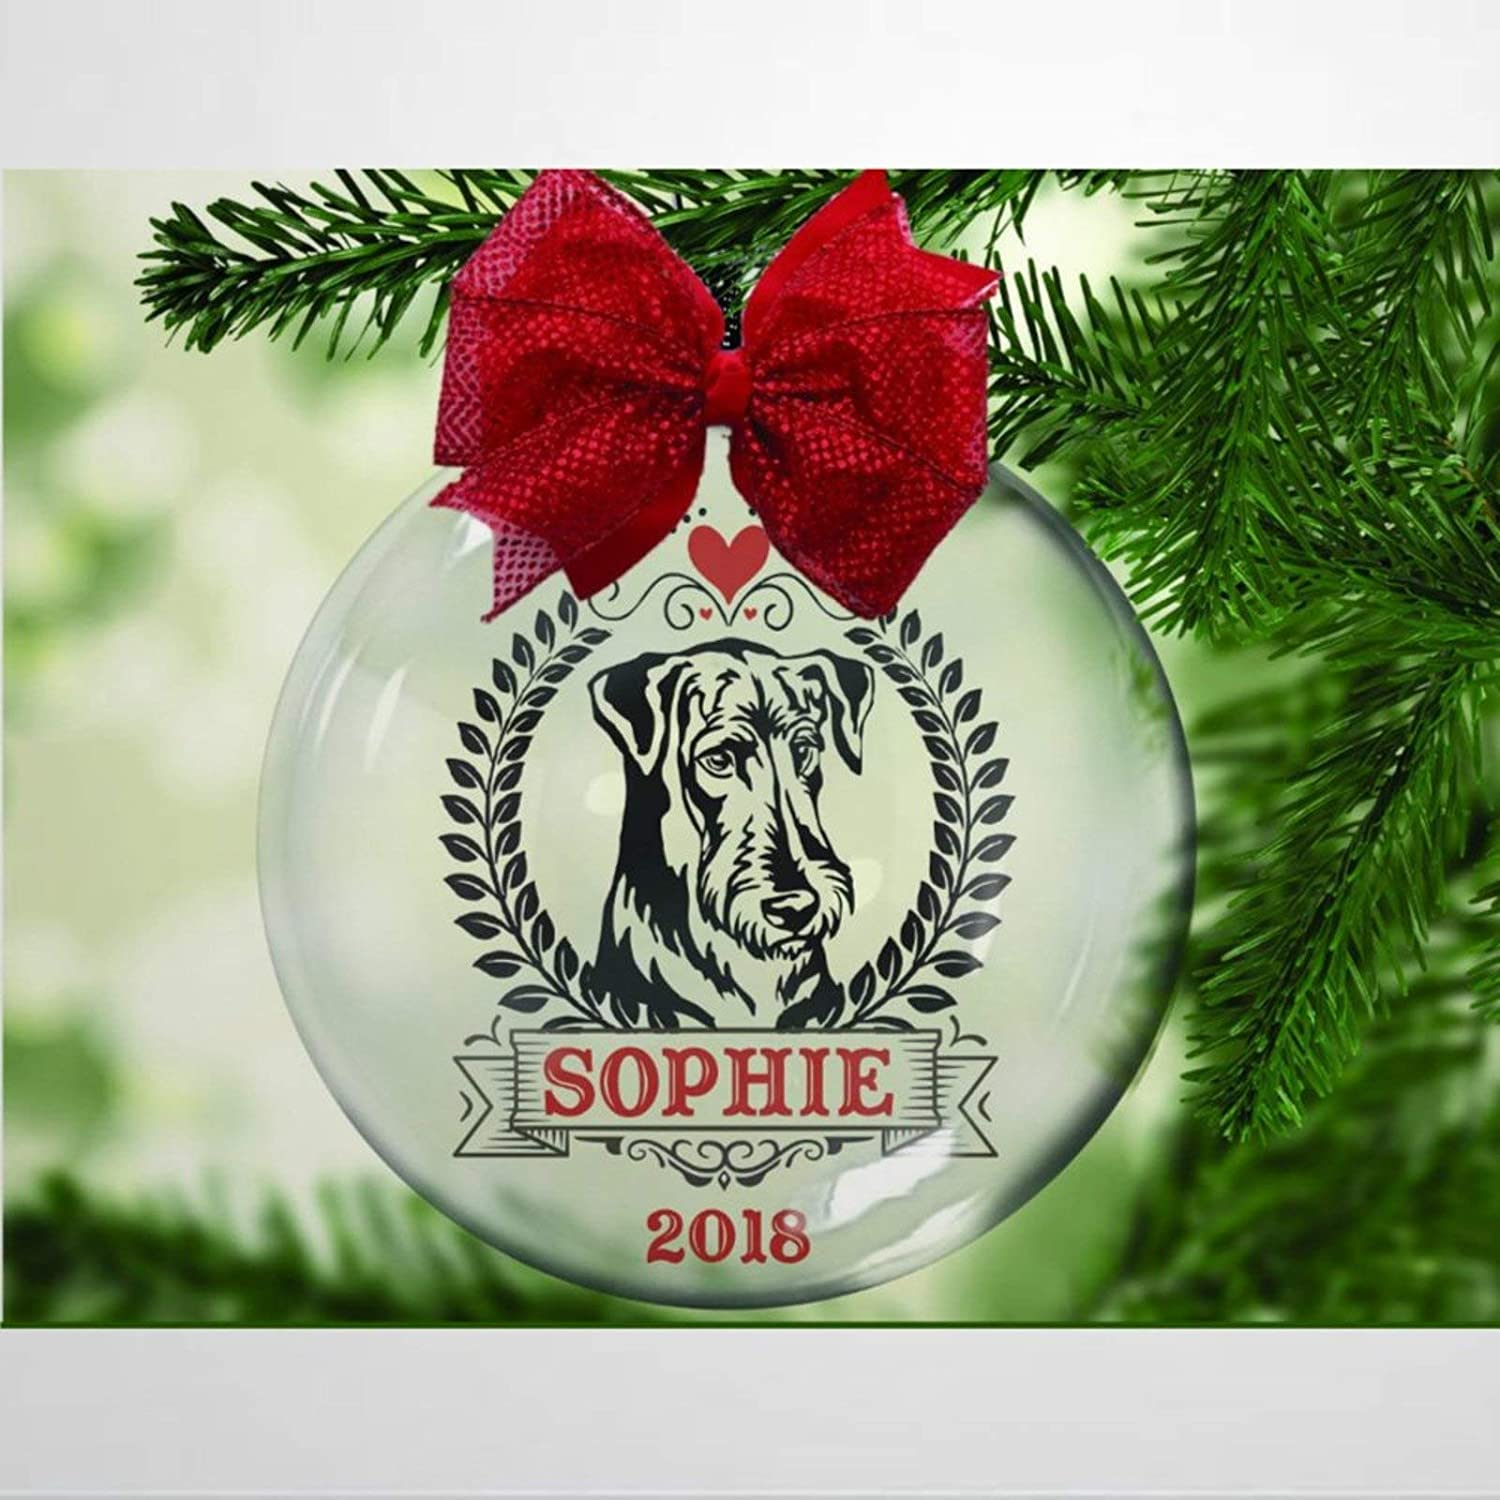 DONL9BAUER Airedale Terrier Personalized Christmas Balls Ornaments for Xmas Tree Dog Lover, Rescue, Adopt Hanging Ball Shatterproof Delicate Baubles Christmas Decorations for Holiday Wedding Party